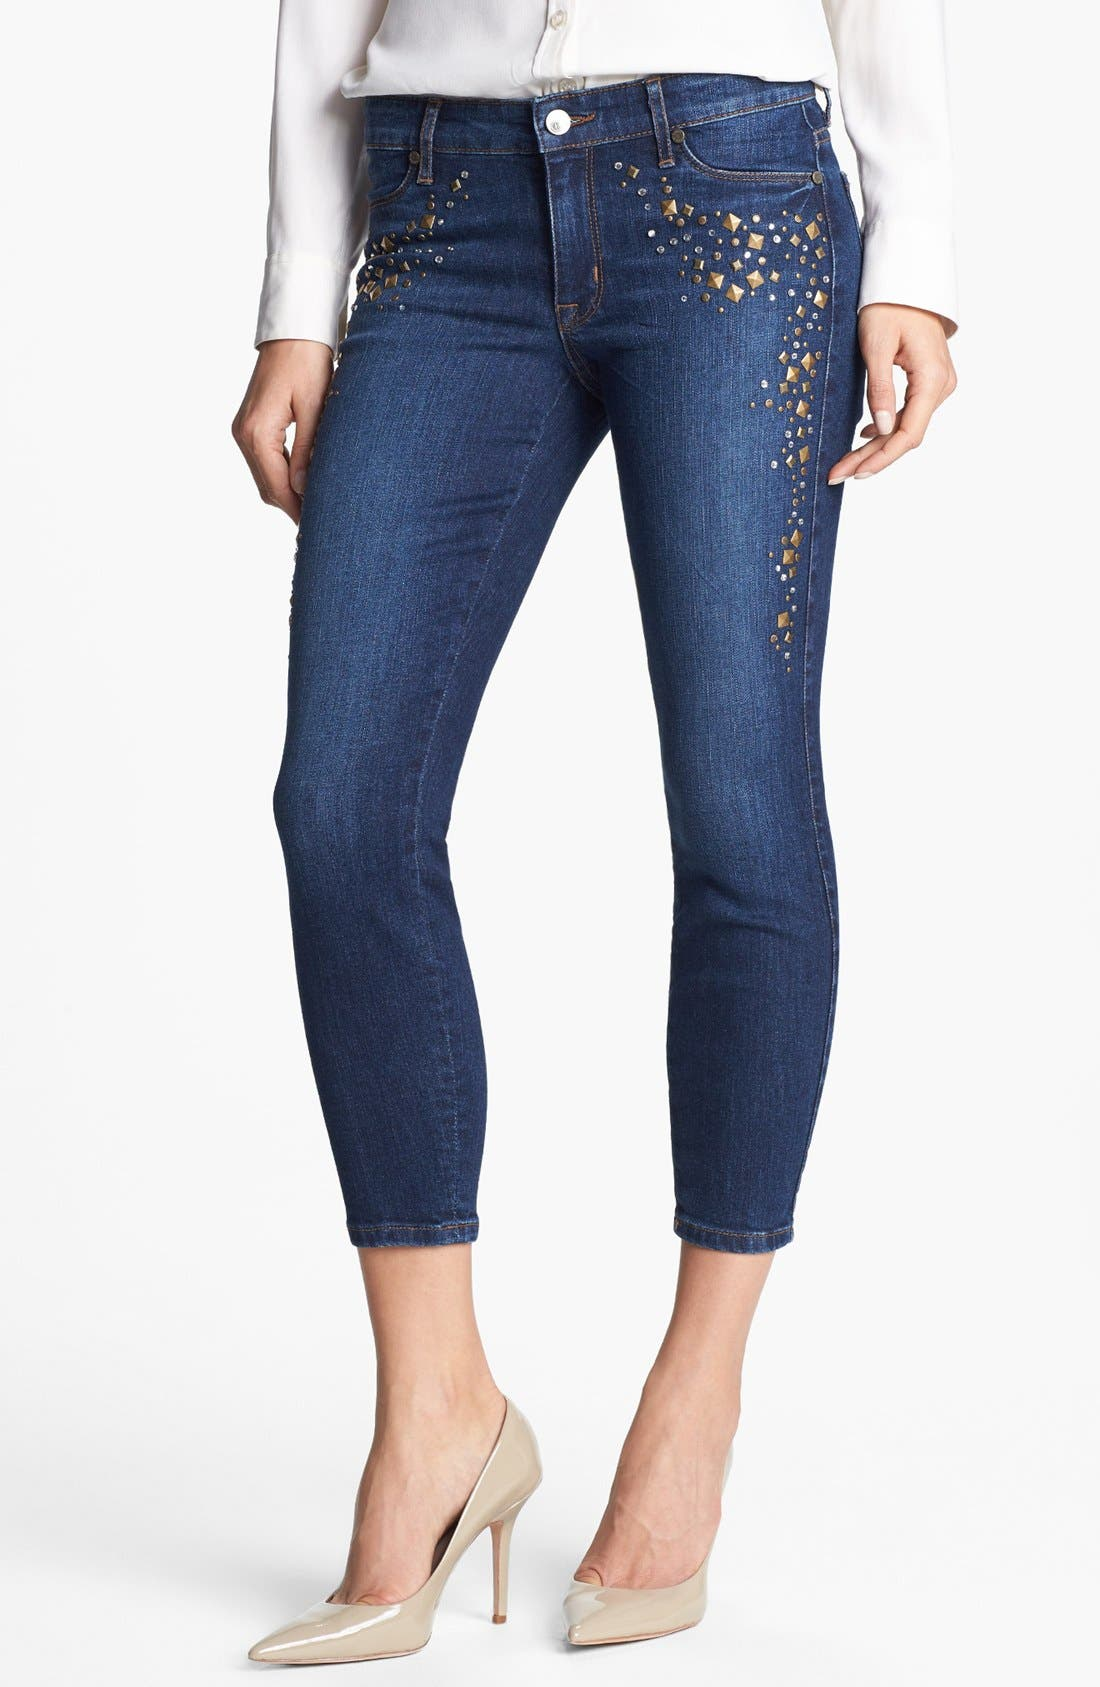 Main Image - CJ by Cookie Johnson 'Believe' Embellished Crop Stretch Jeans